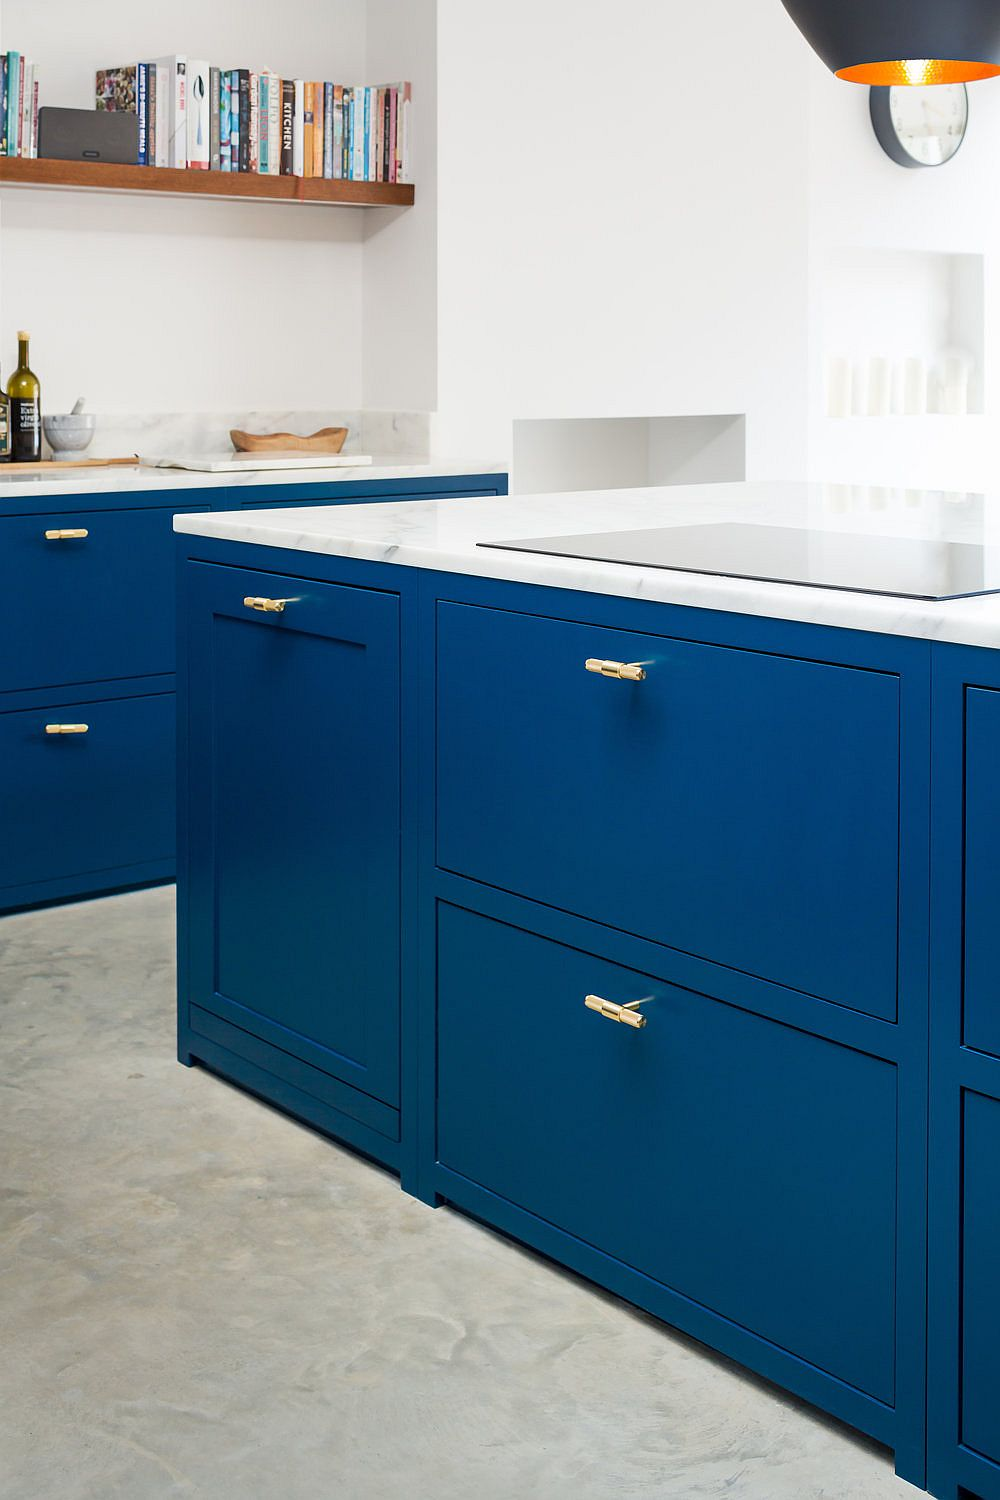 Space-savvy and stylish modern kitchen island with navy blue joinery and brass handles